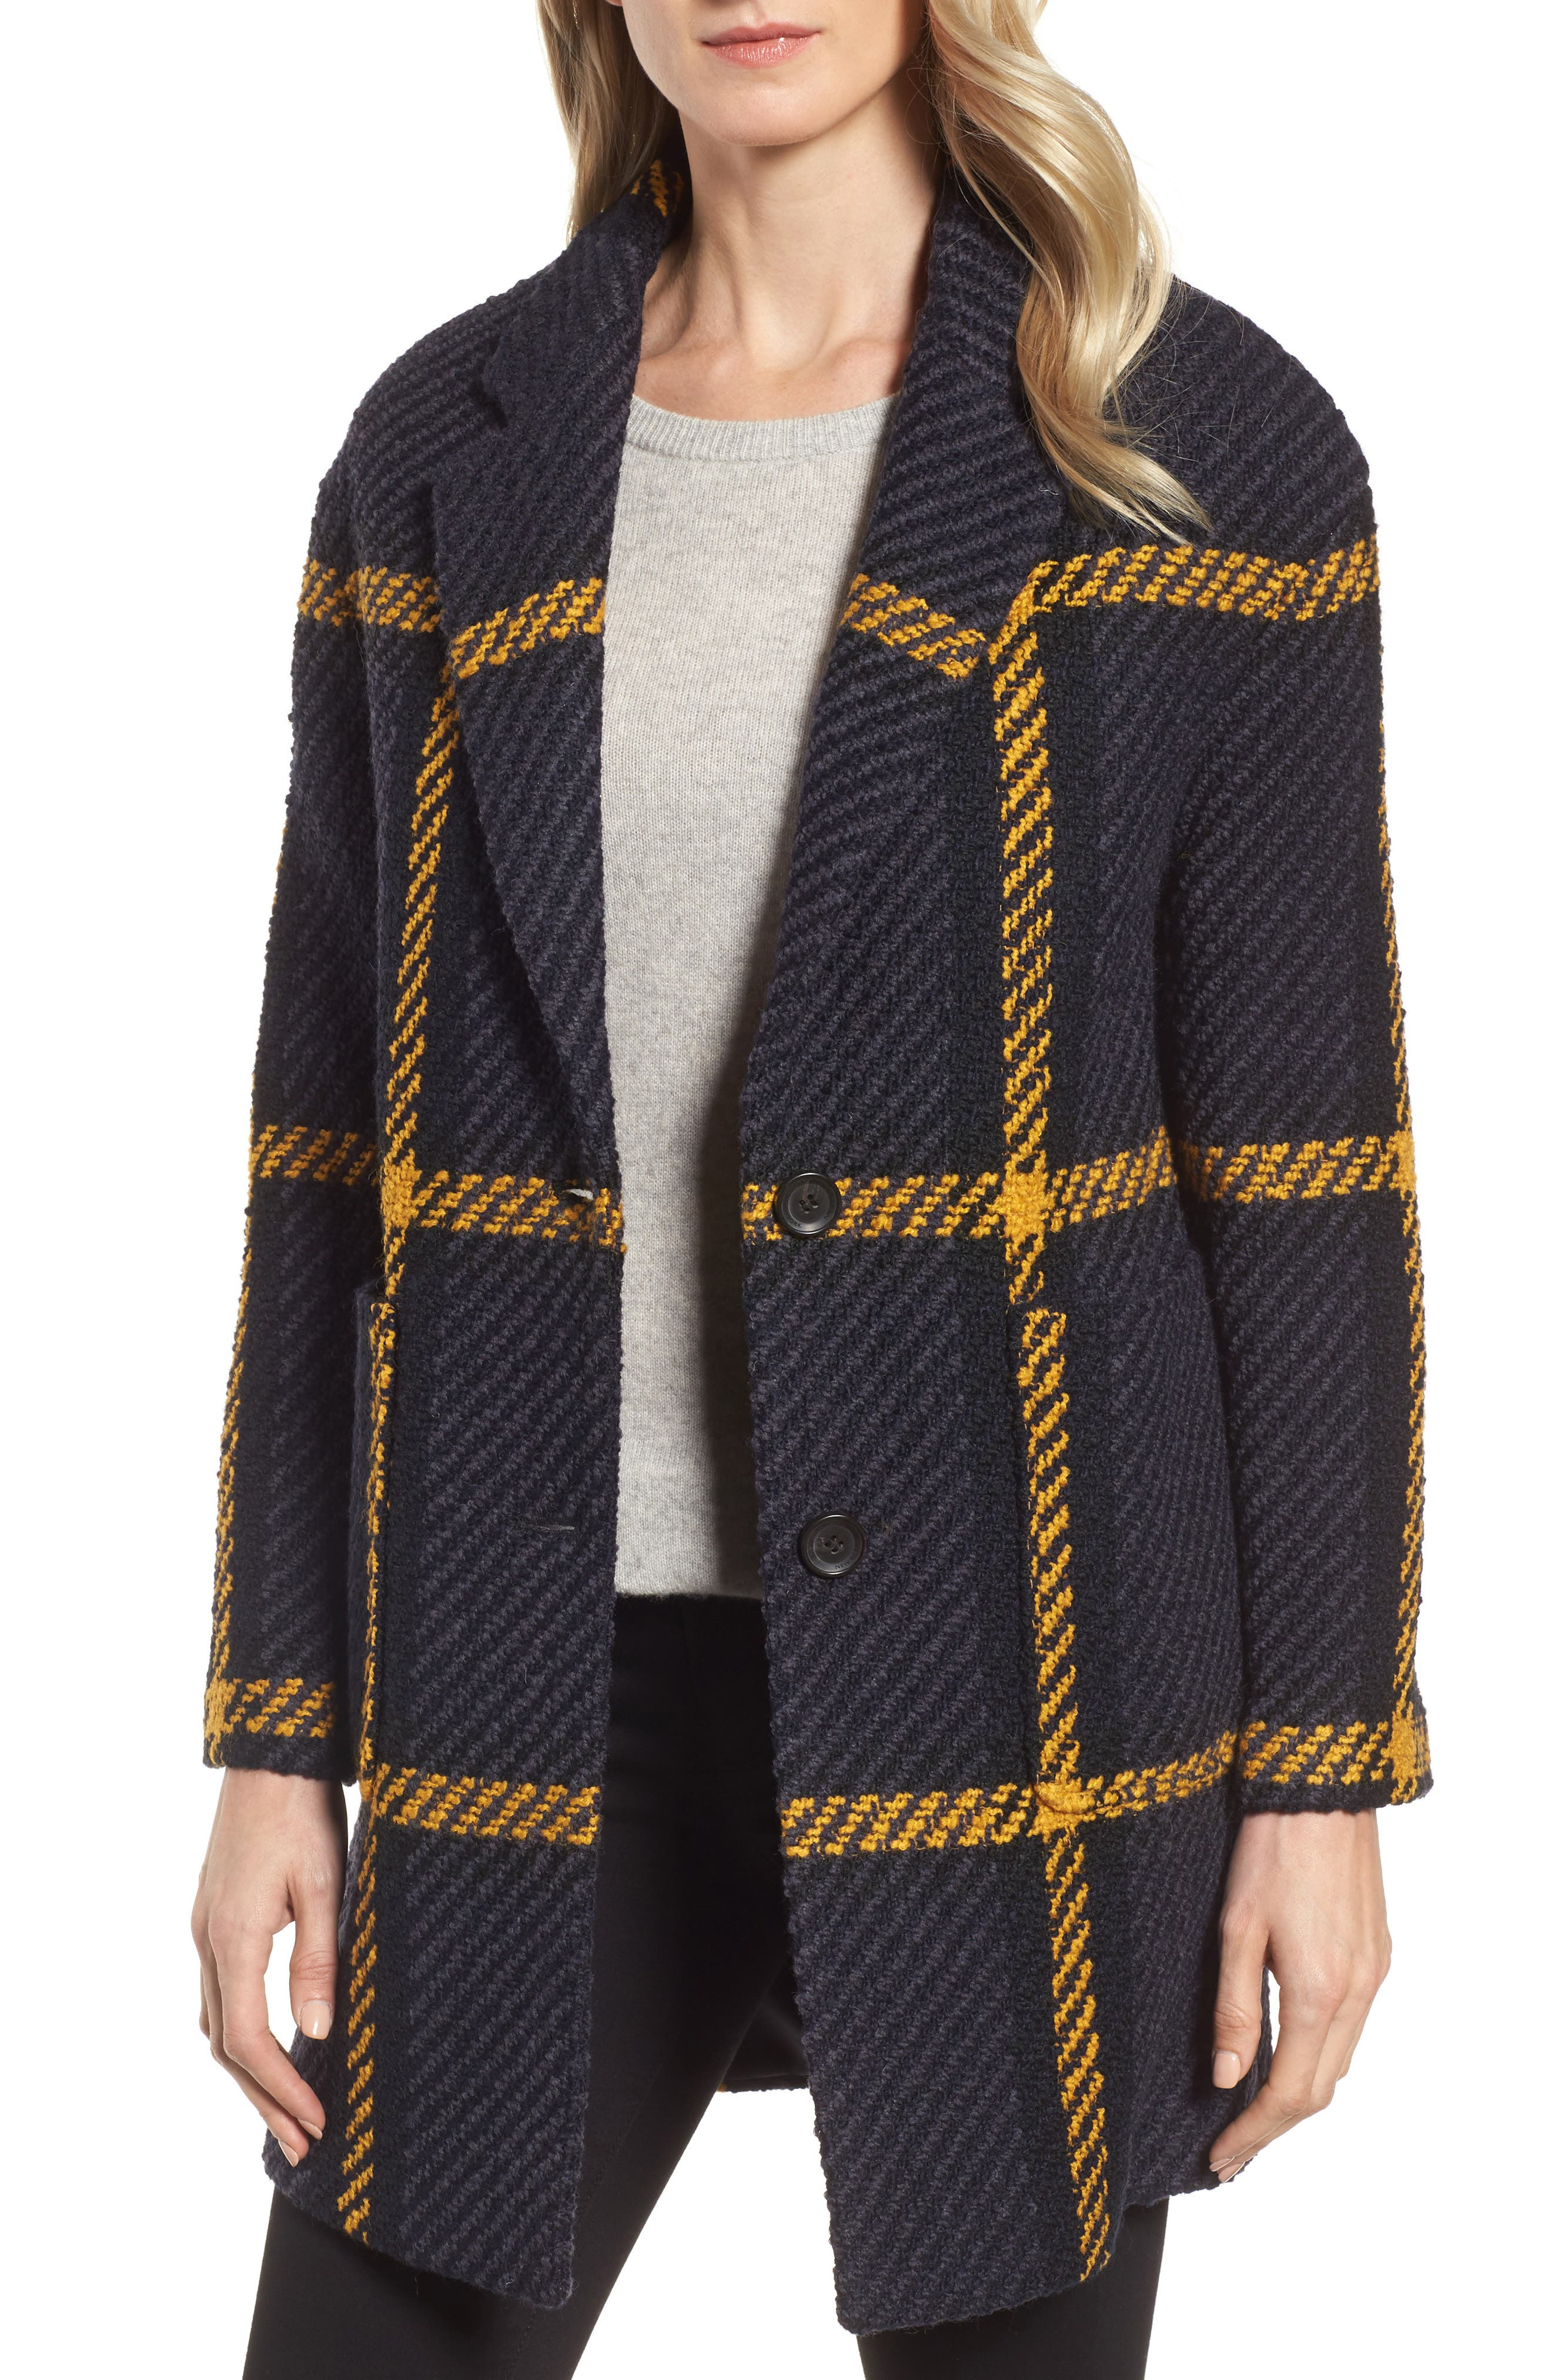 DKNY Textured Plaid Wool Blend Coat,                             Main thumbnail 1, color,                             Black/ Navy/ Yellow